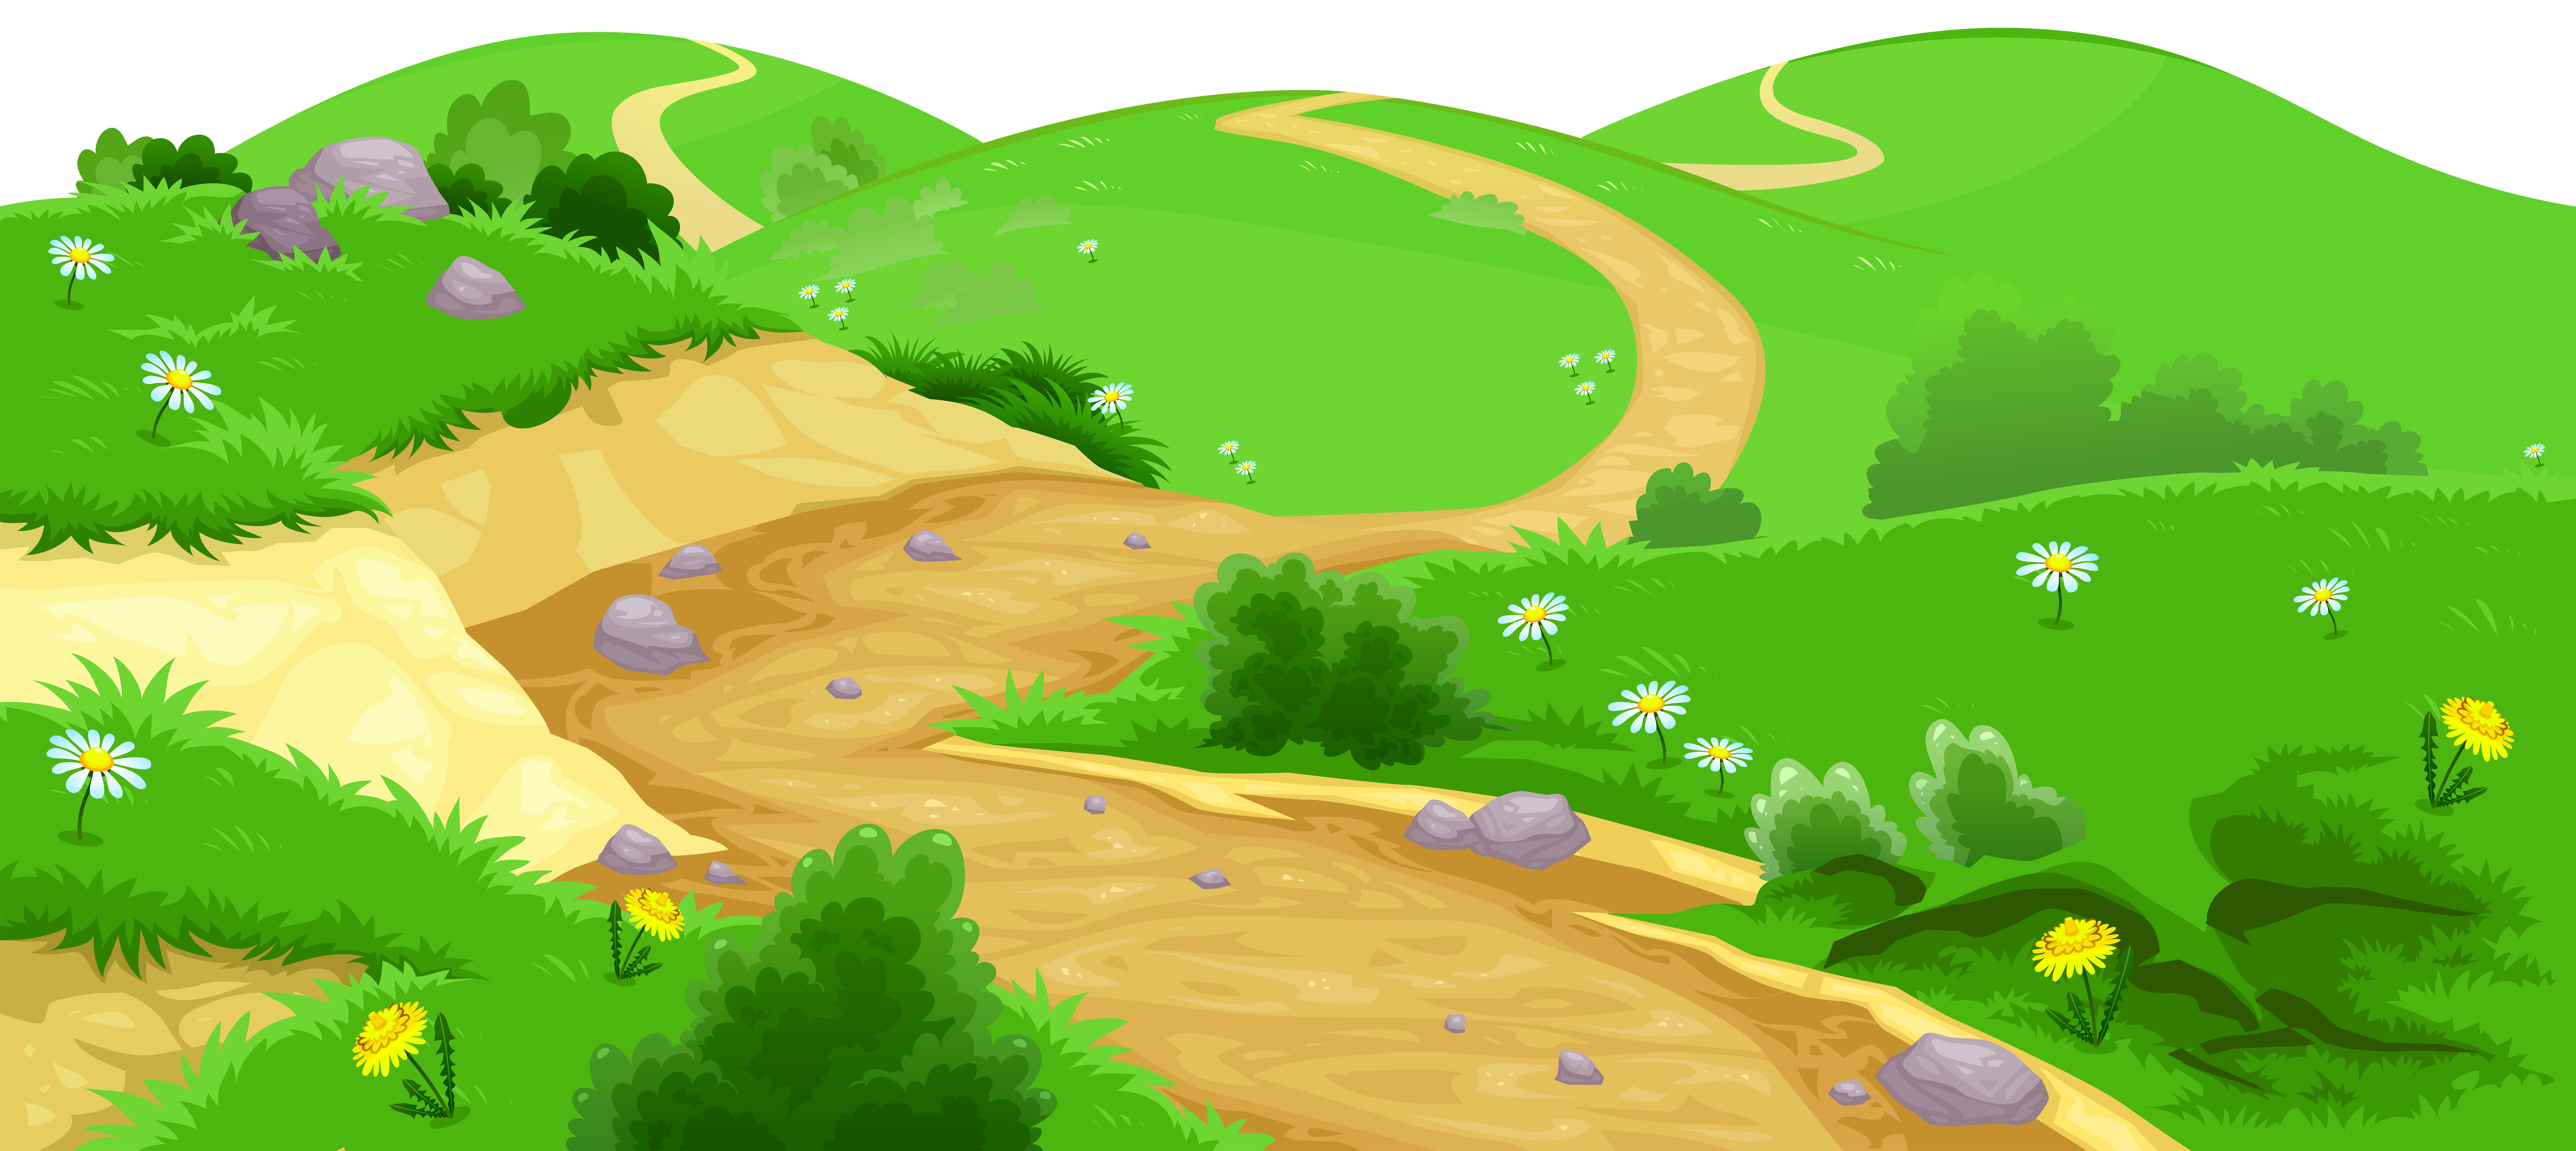 jpg library download Ground safari free on. Valley clipart park scene